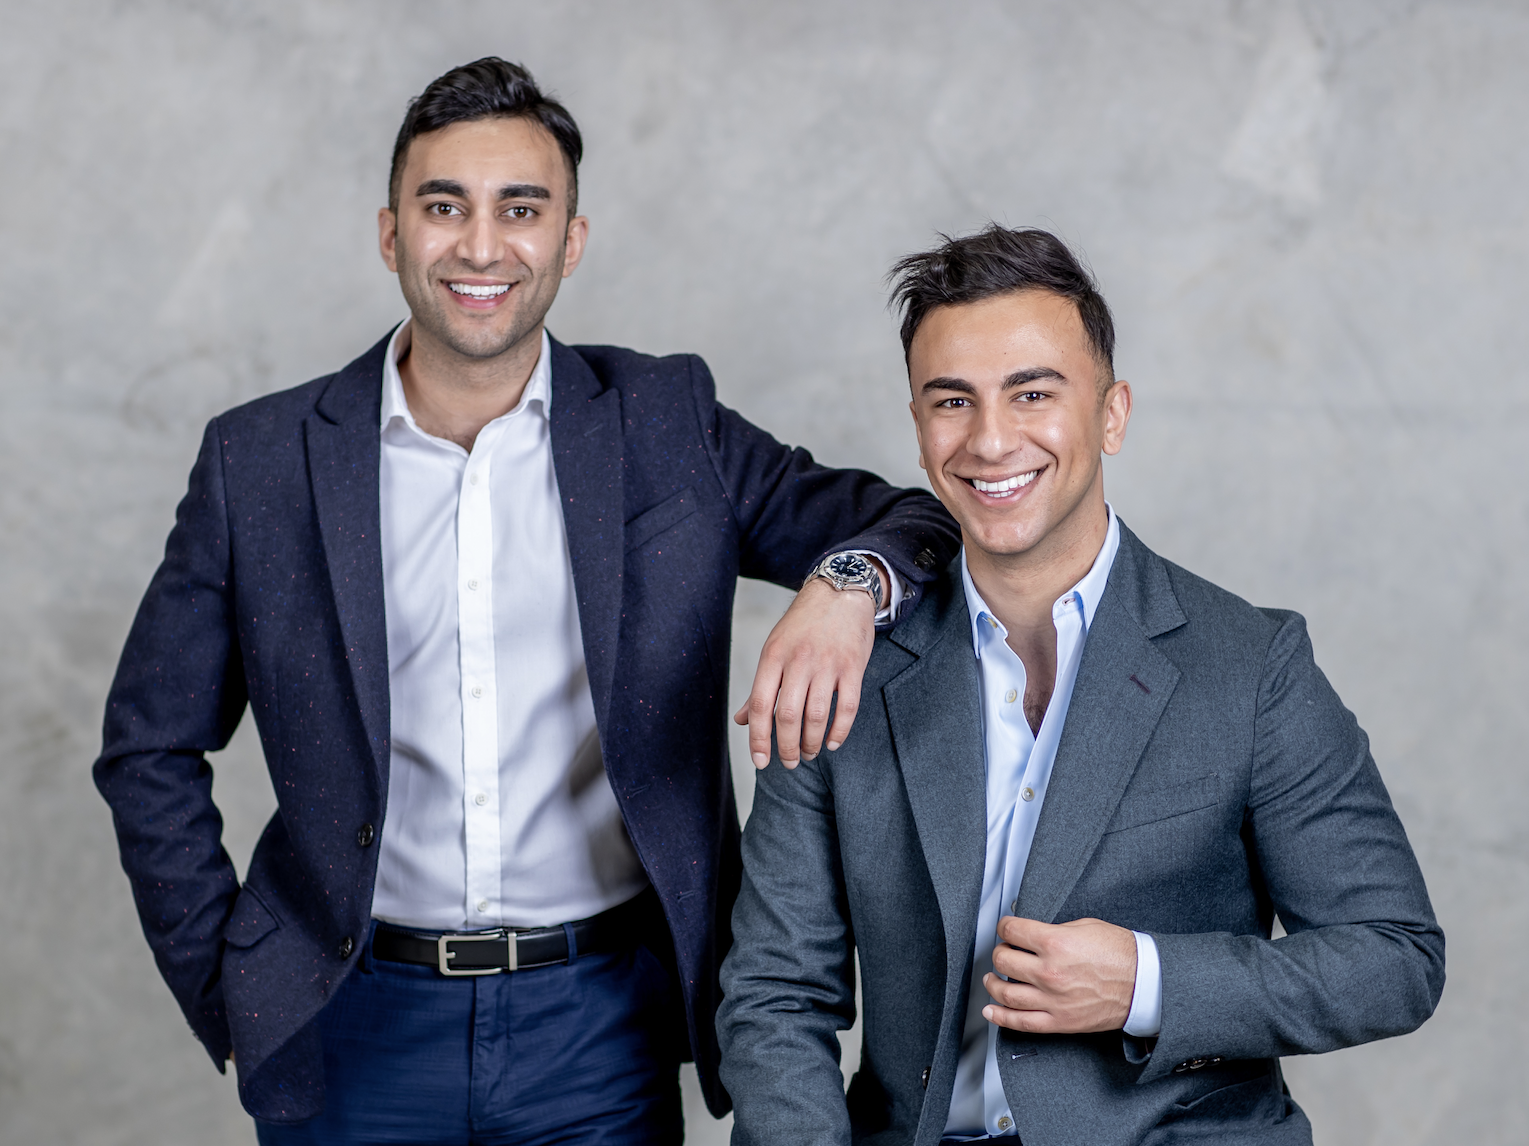 The millennial cofounders of a luxury accessories startup reveal the social media strategy they used to quickly carve out a market